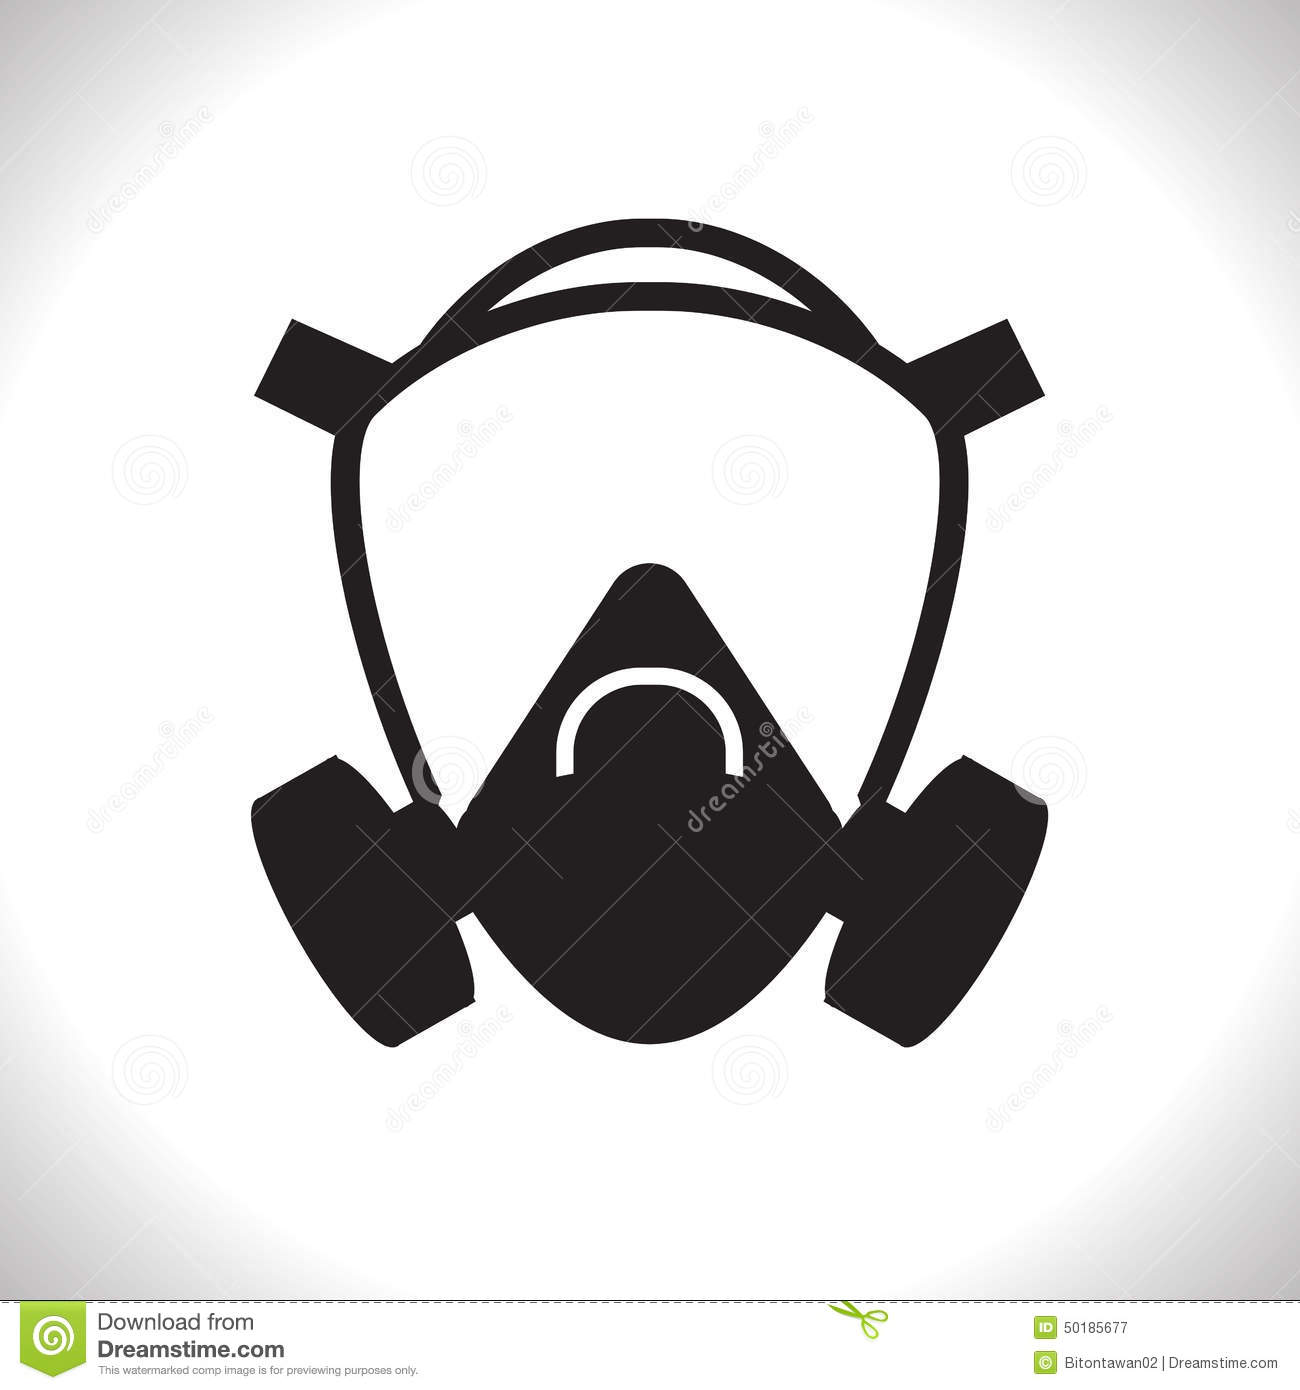 Gas mask stock vector. Illustration of chemical, medical ...